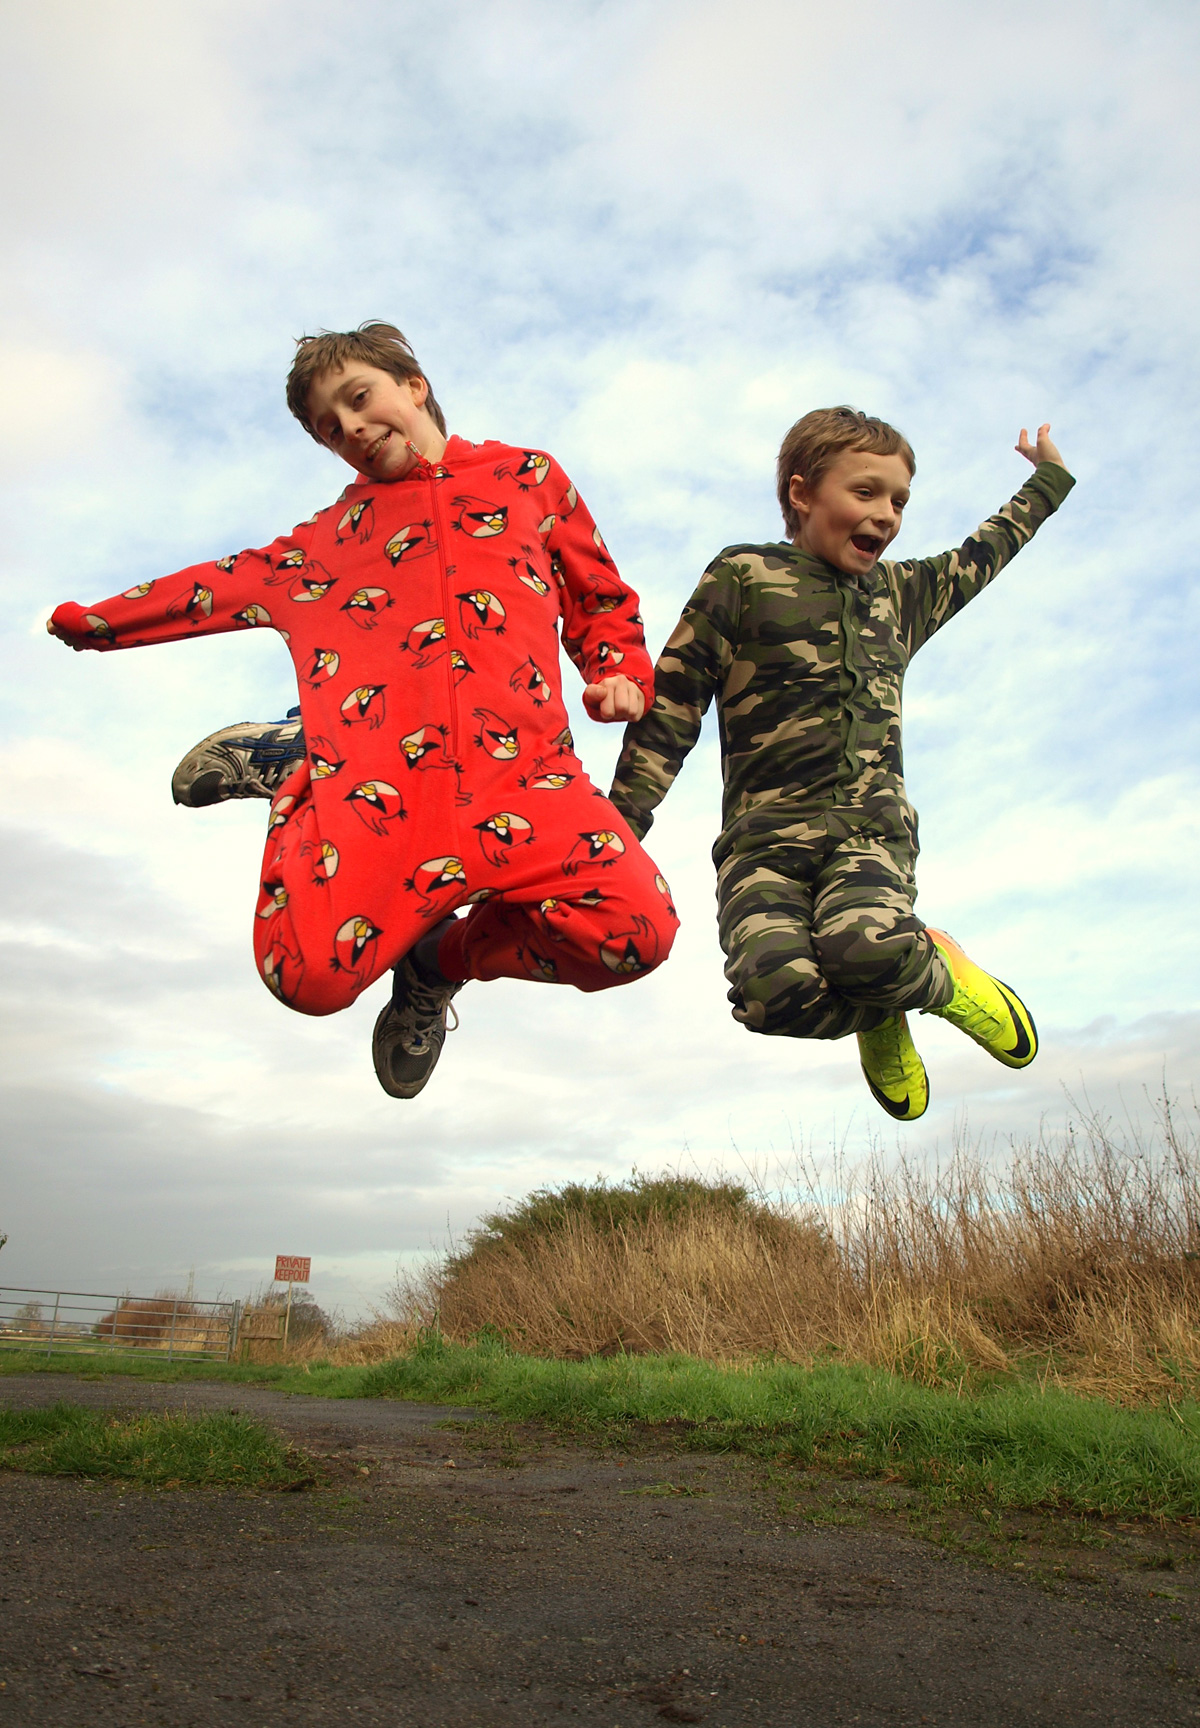 Elliot Ritchie, 12, left, and classmate Robert Gowland, 11, who are taking part in a sponsored 5k run in their onesies to raise money for Classrooms For Malawi